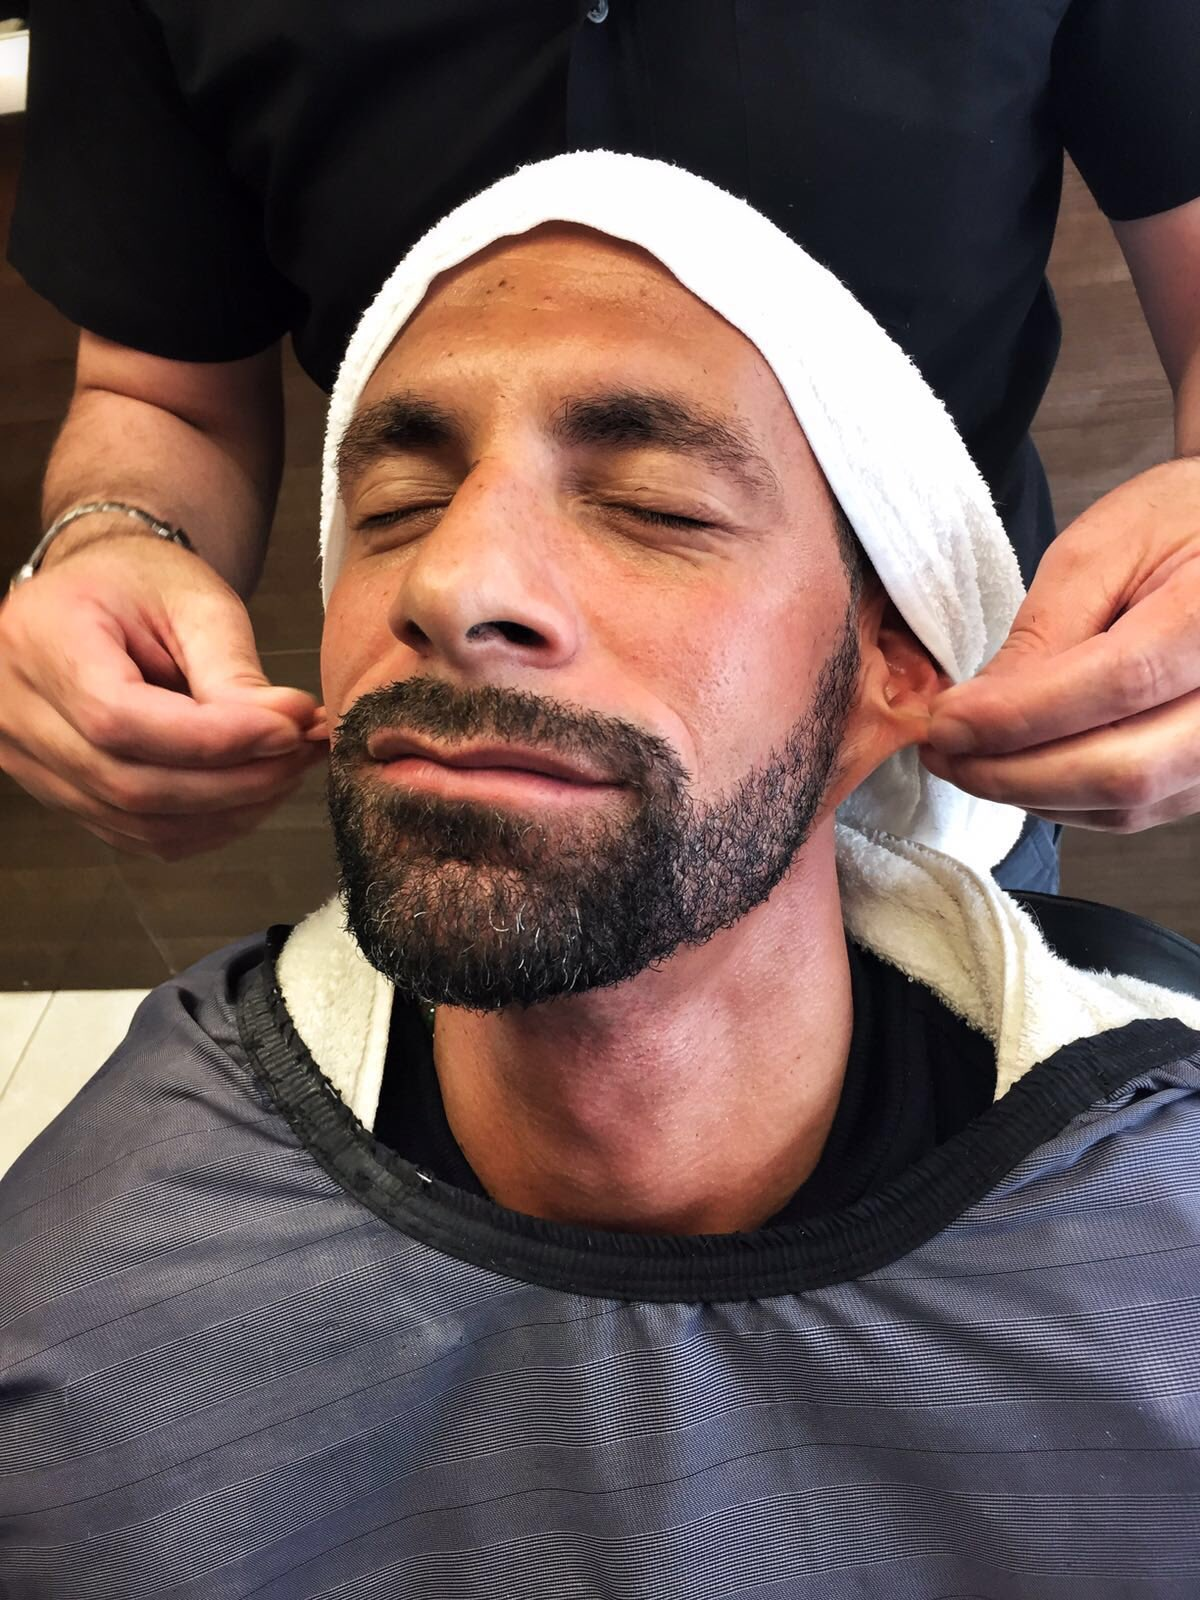 Just freshening up for #Euro2016 🇫🇷 looking forward to heading to Paris later.. Stay tuned to my 👻 SC - rioferdyfive https://t.co/bPjd1xx6iQ